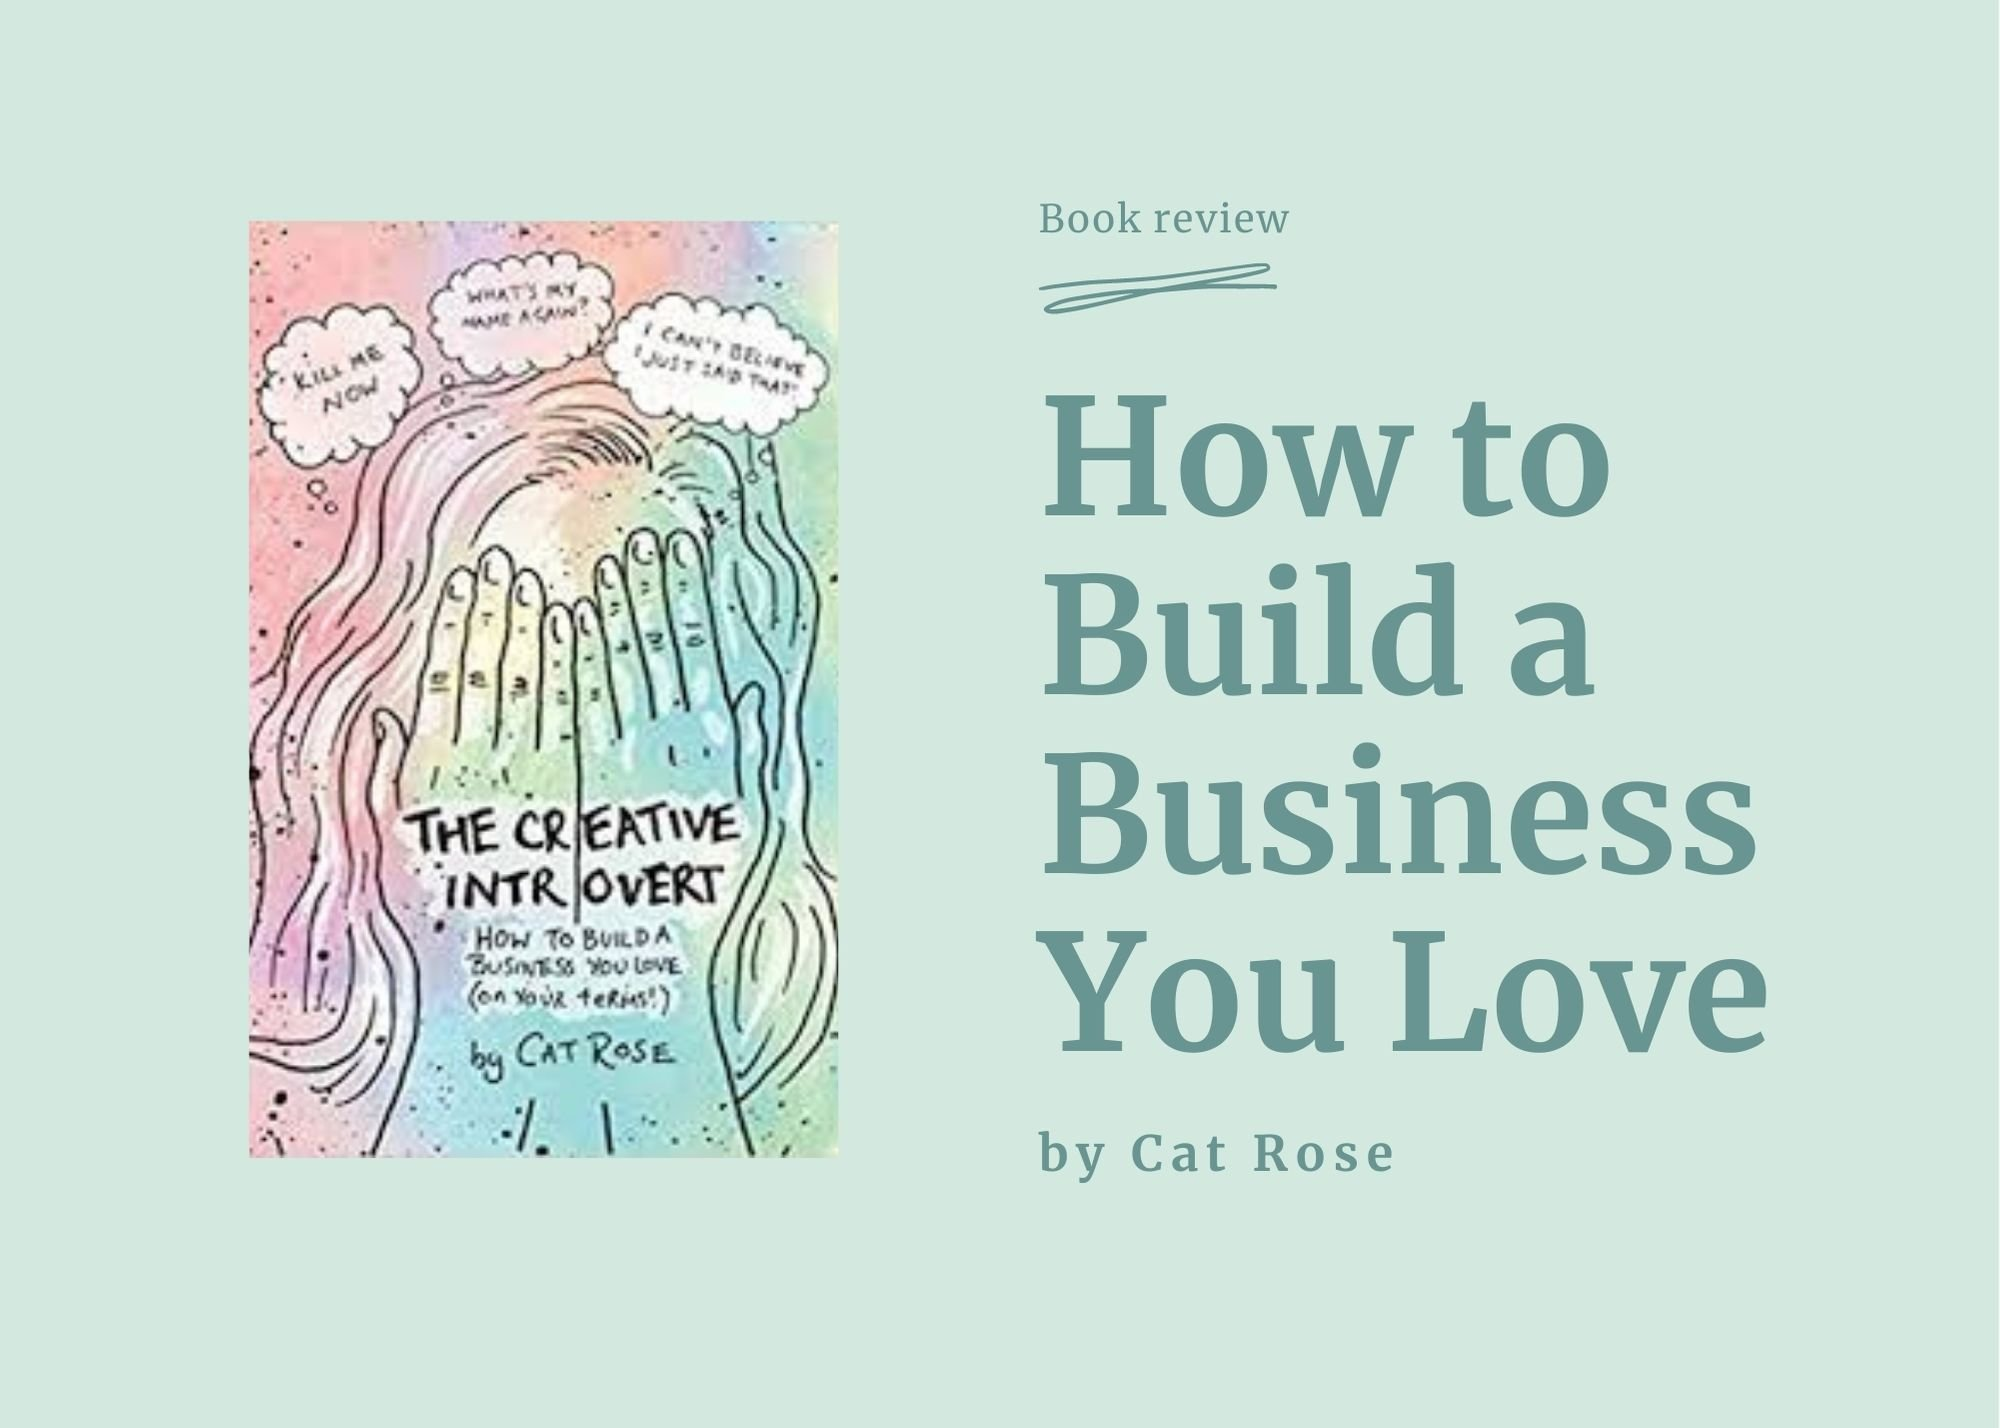 How to build a business you love, by Cat Rose